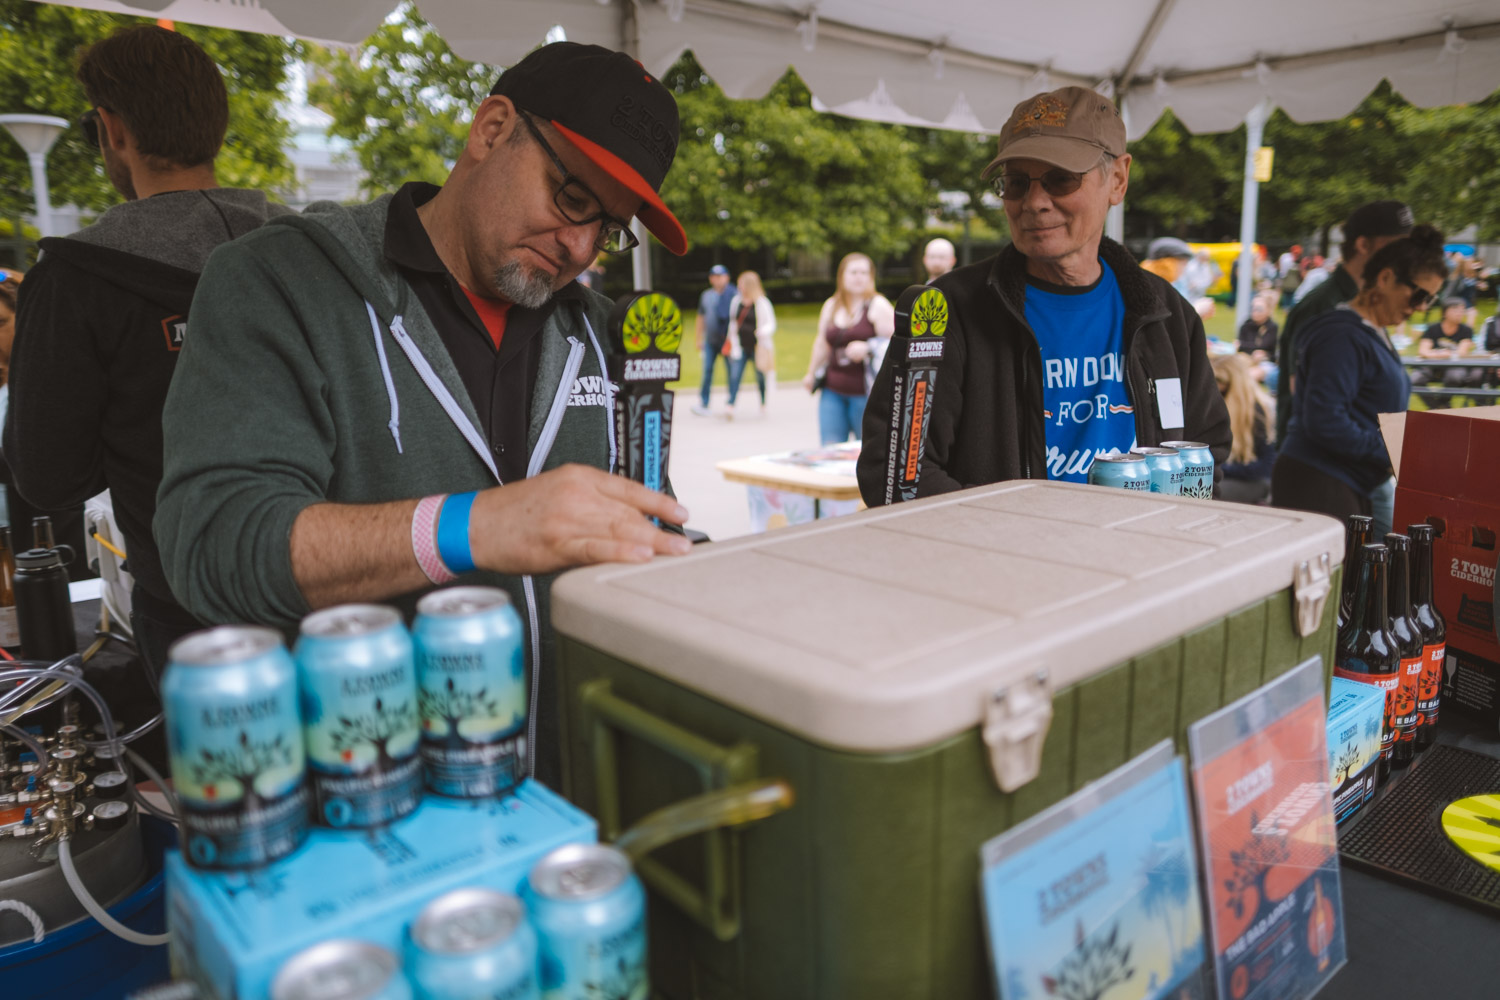 Thousands came out to CenturyLink Field for the annual Bacon, Eggs and Kegs - a boozy brunch laden with breweries, restaurants, mimosas, bacon and eggs (obviously) and the most insane customizable Bloody Mary bar. If this isn't taking brunch to the next level, we don't know what is. (Image: Ryan McBoyle/ Seattle Refined)